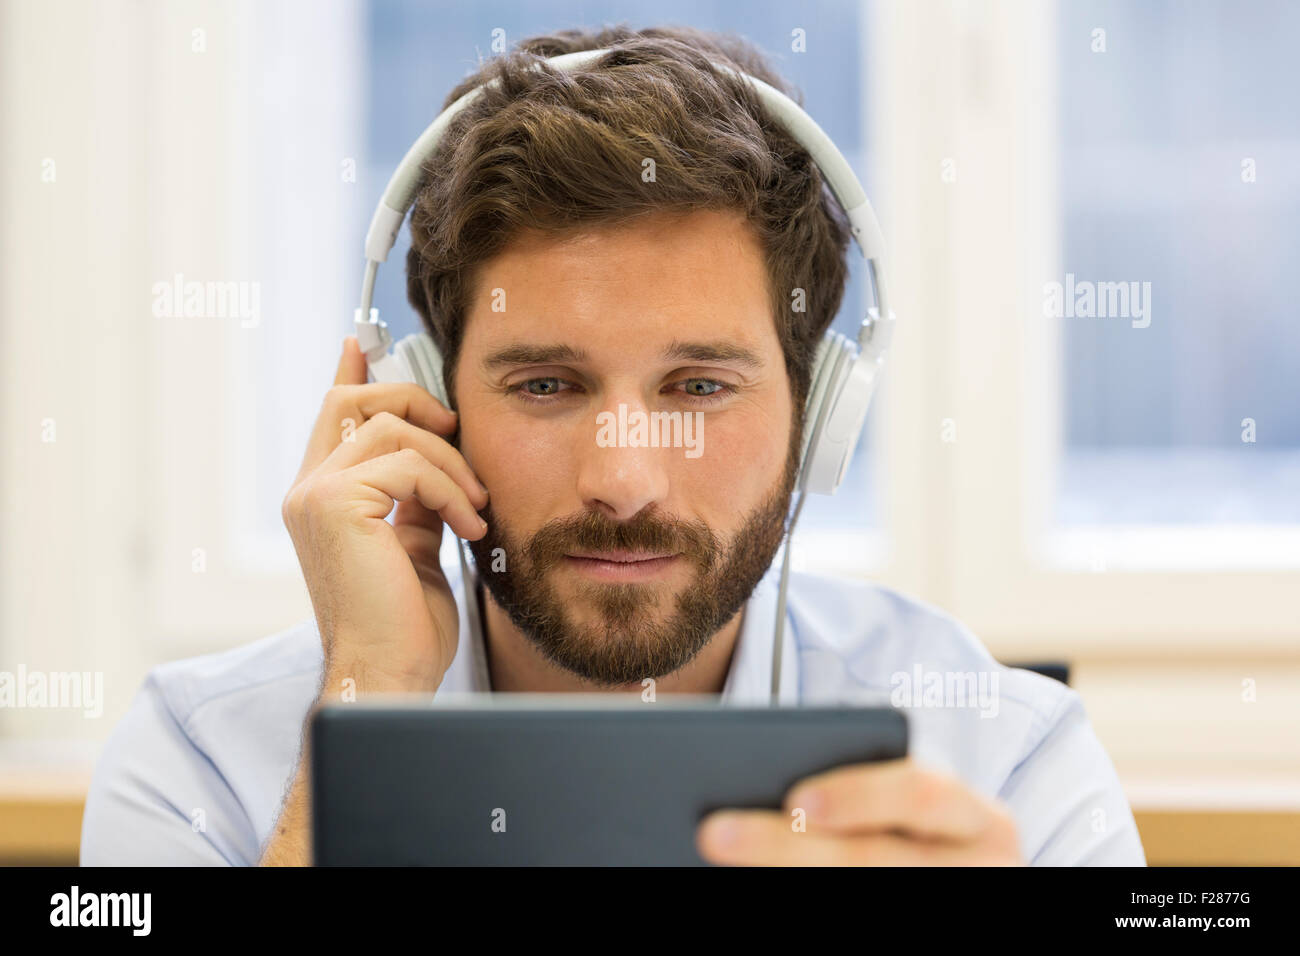 Creative businessman listening to headphones and using digital tablet. Banque D'Images